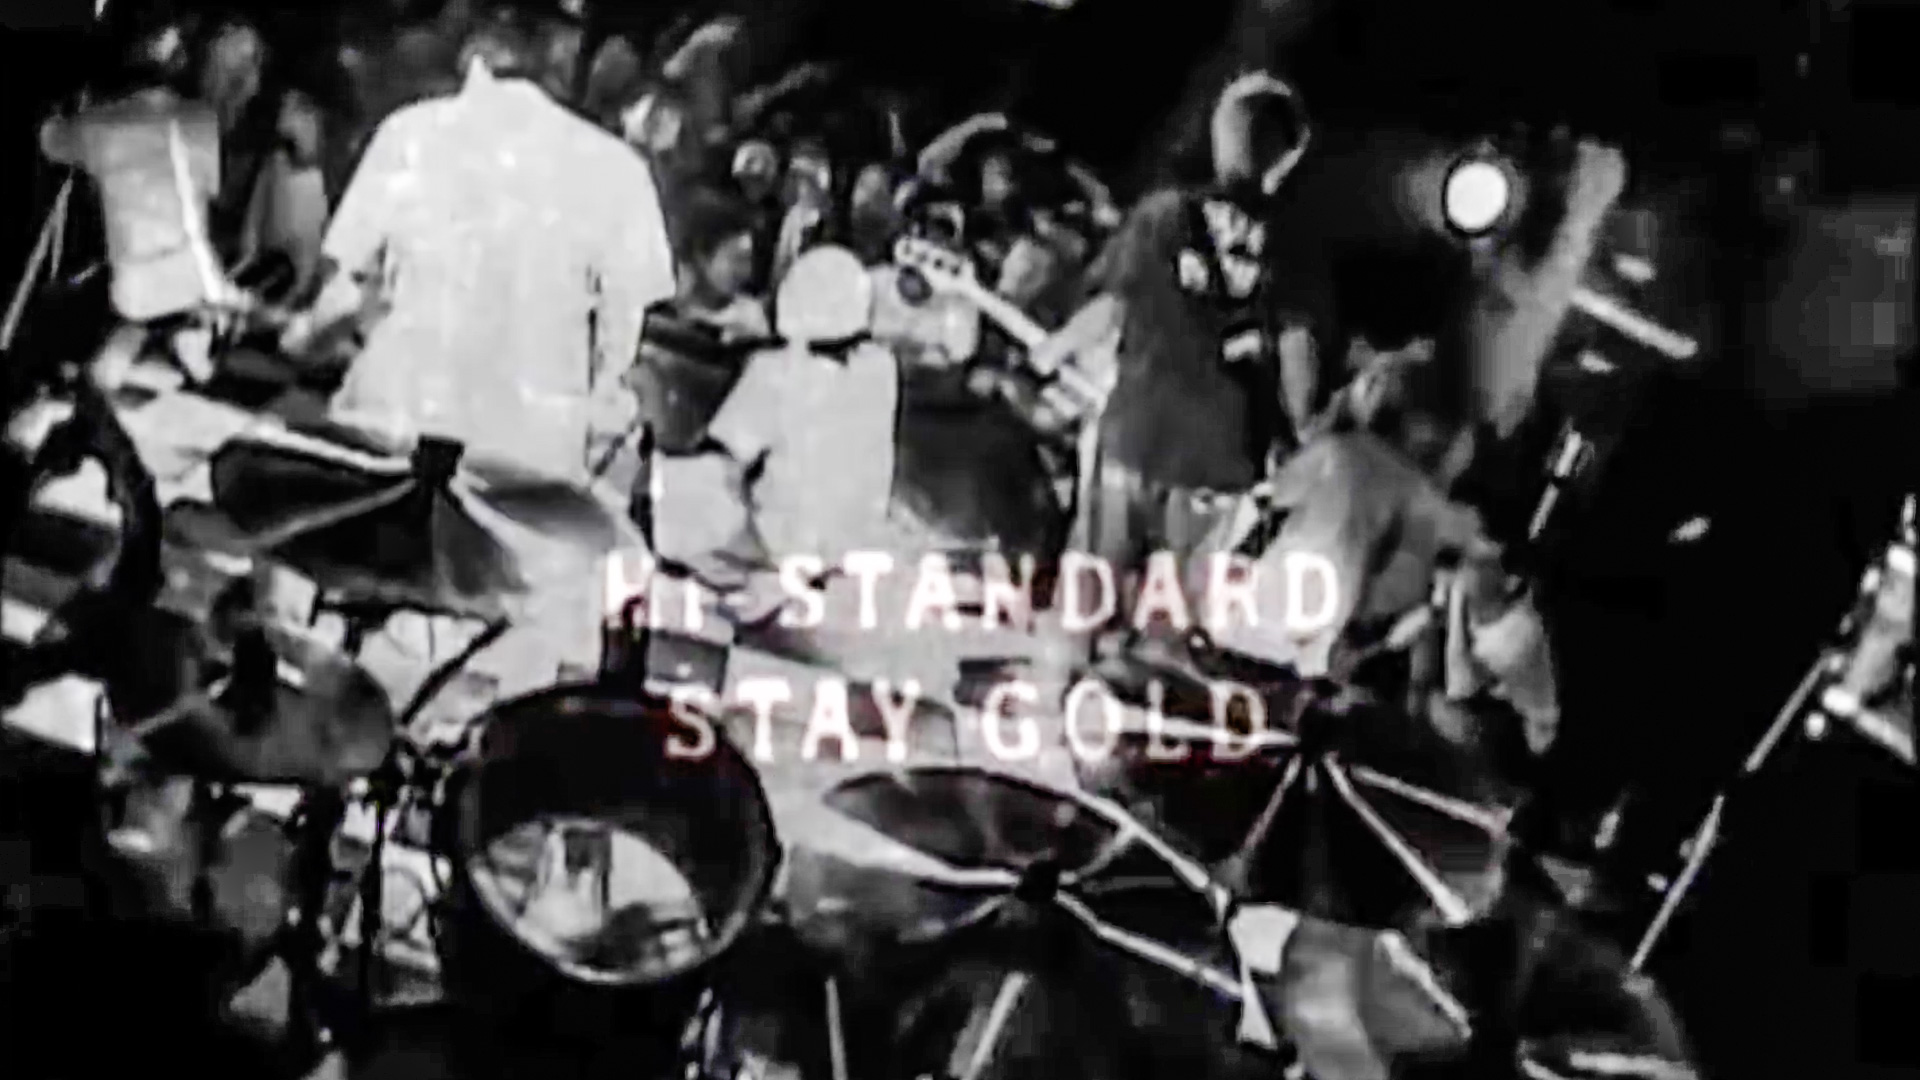 Hi-STANDARD – Stay Gold